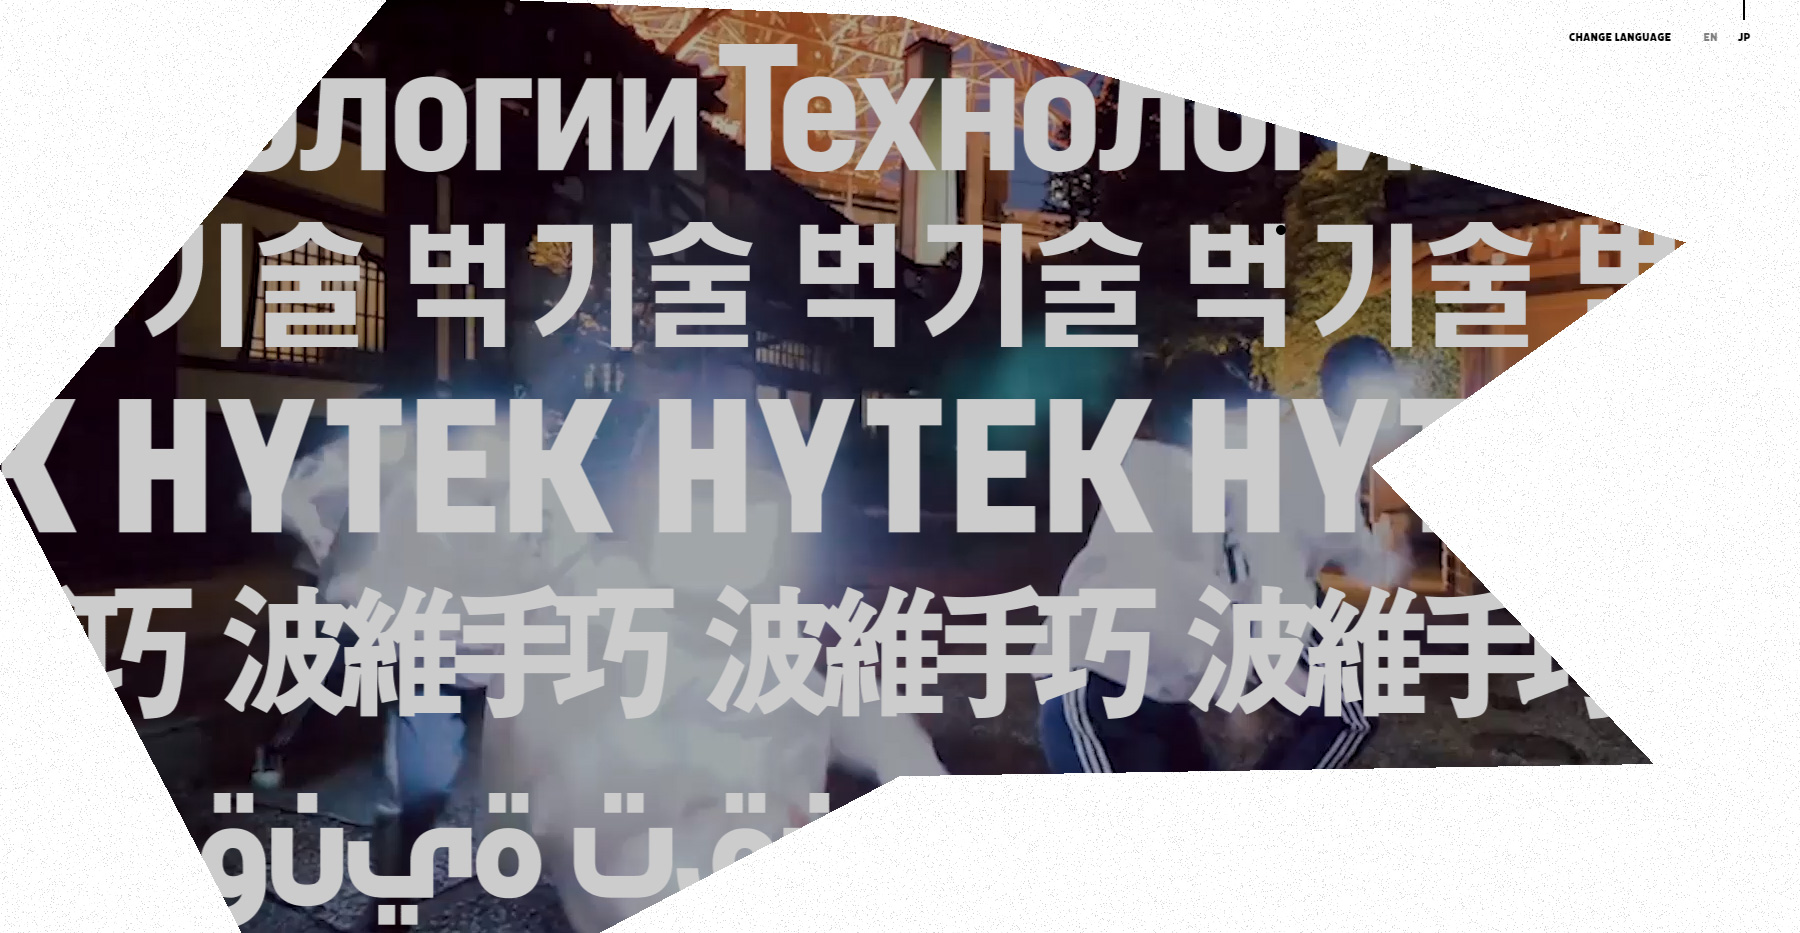 HYTEK - Website of the Day